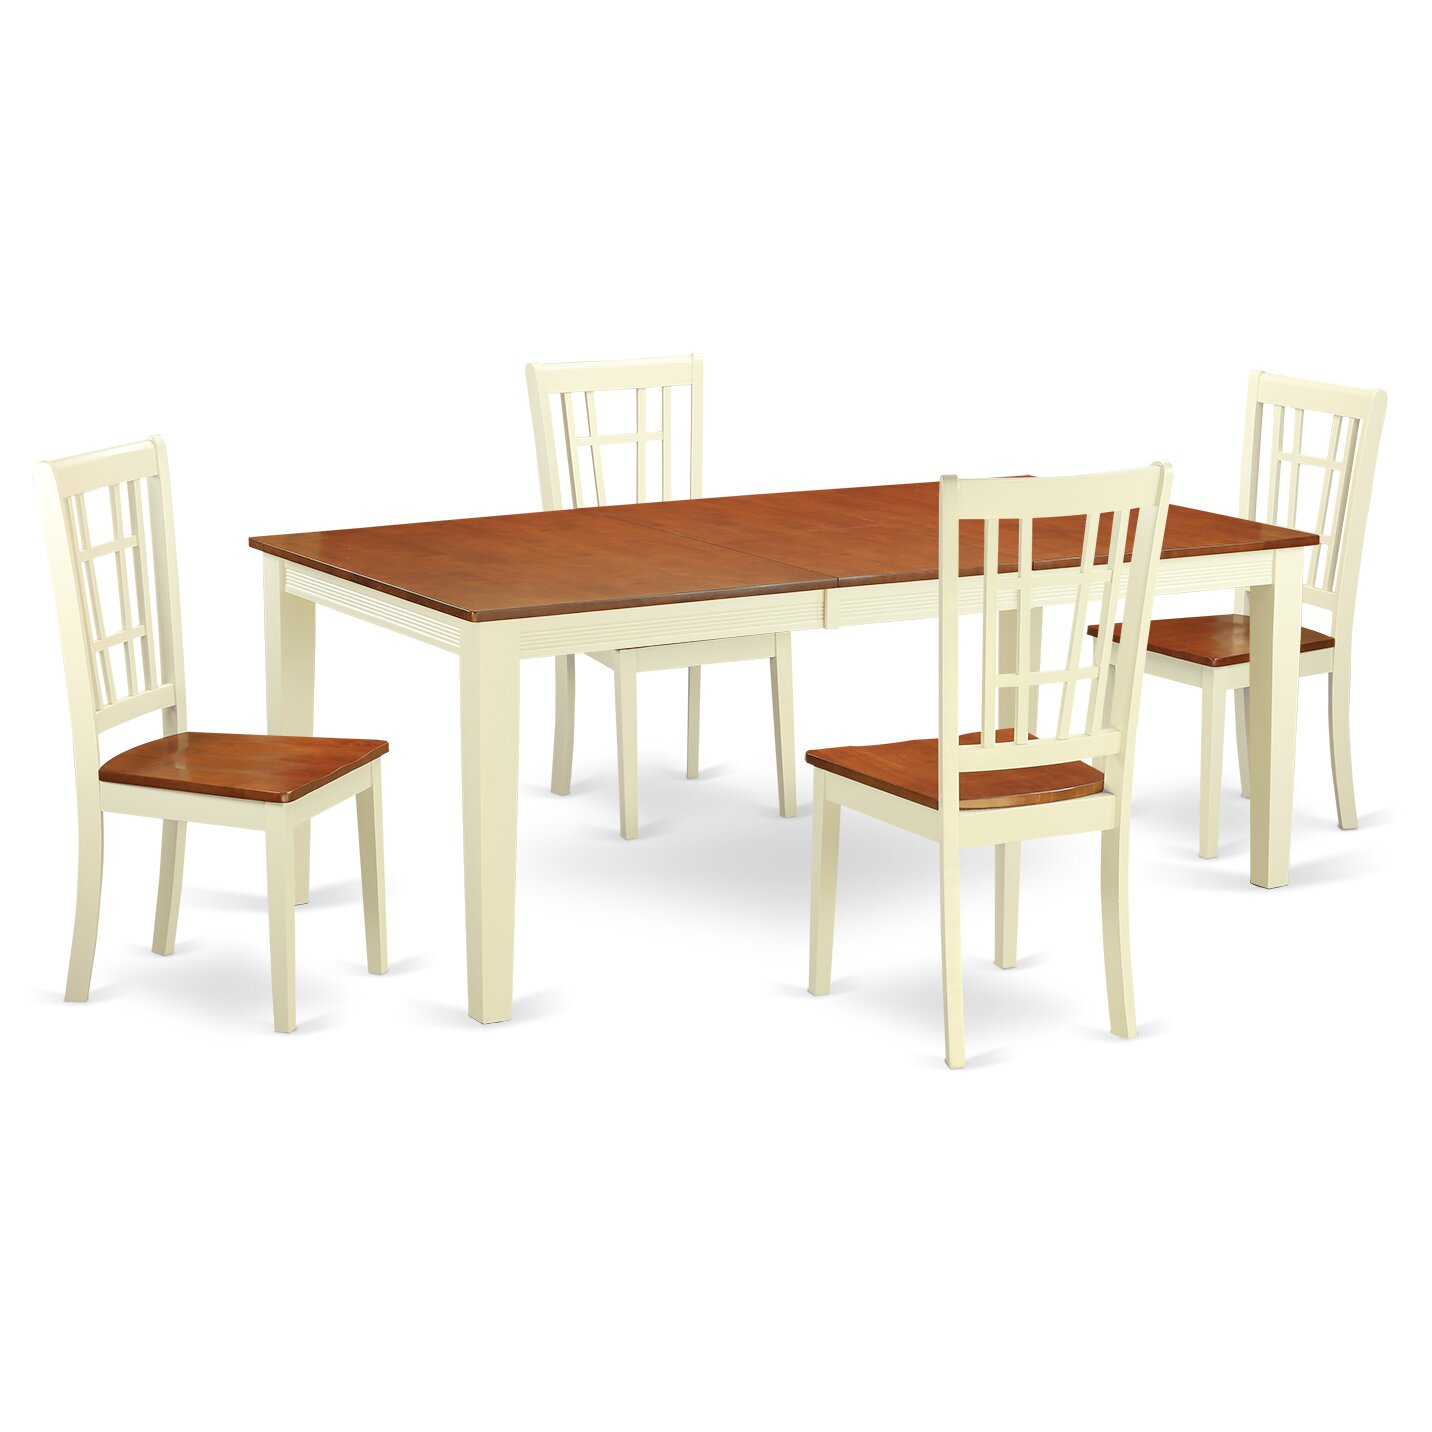 East west quincy 5 piece dining set wayfair for Kitchenette sets furniture